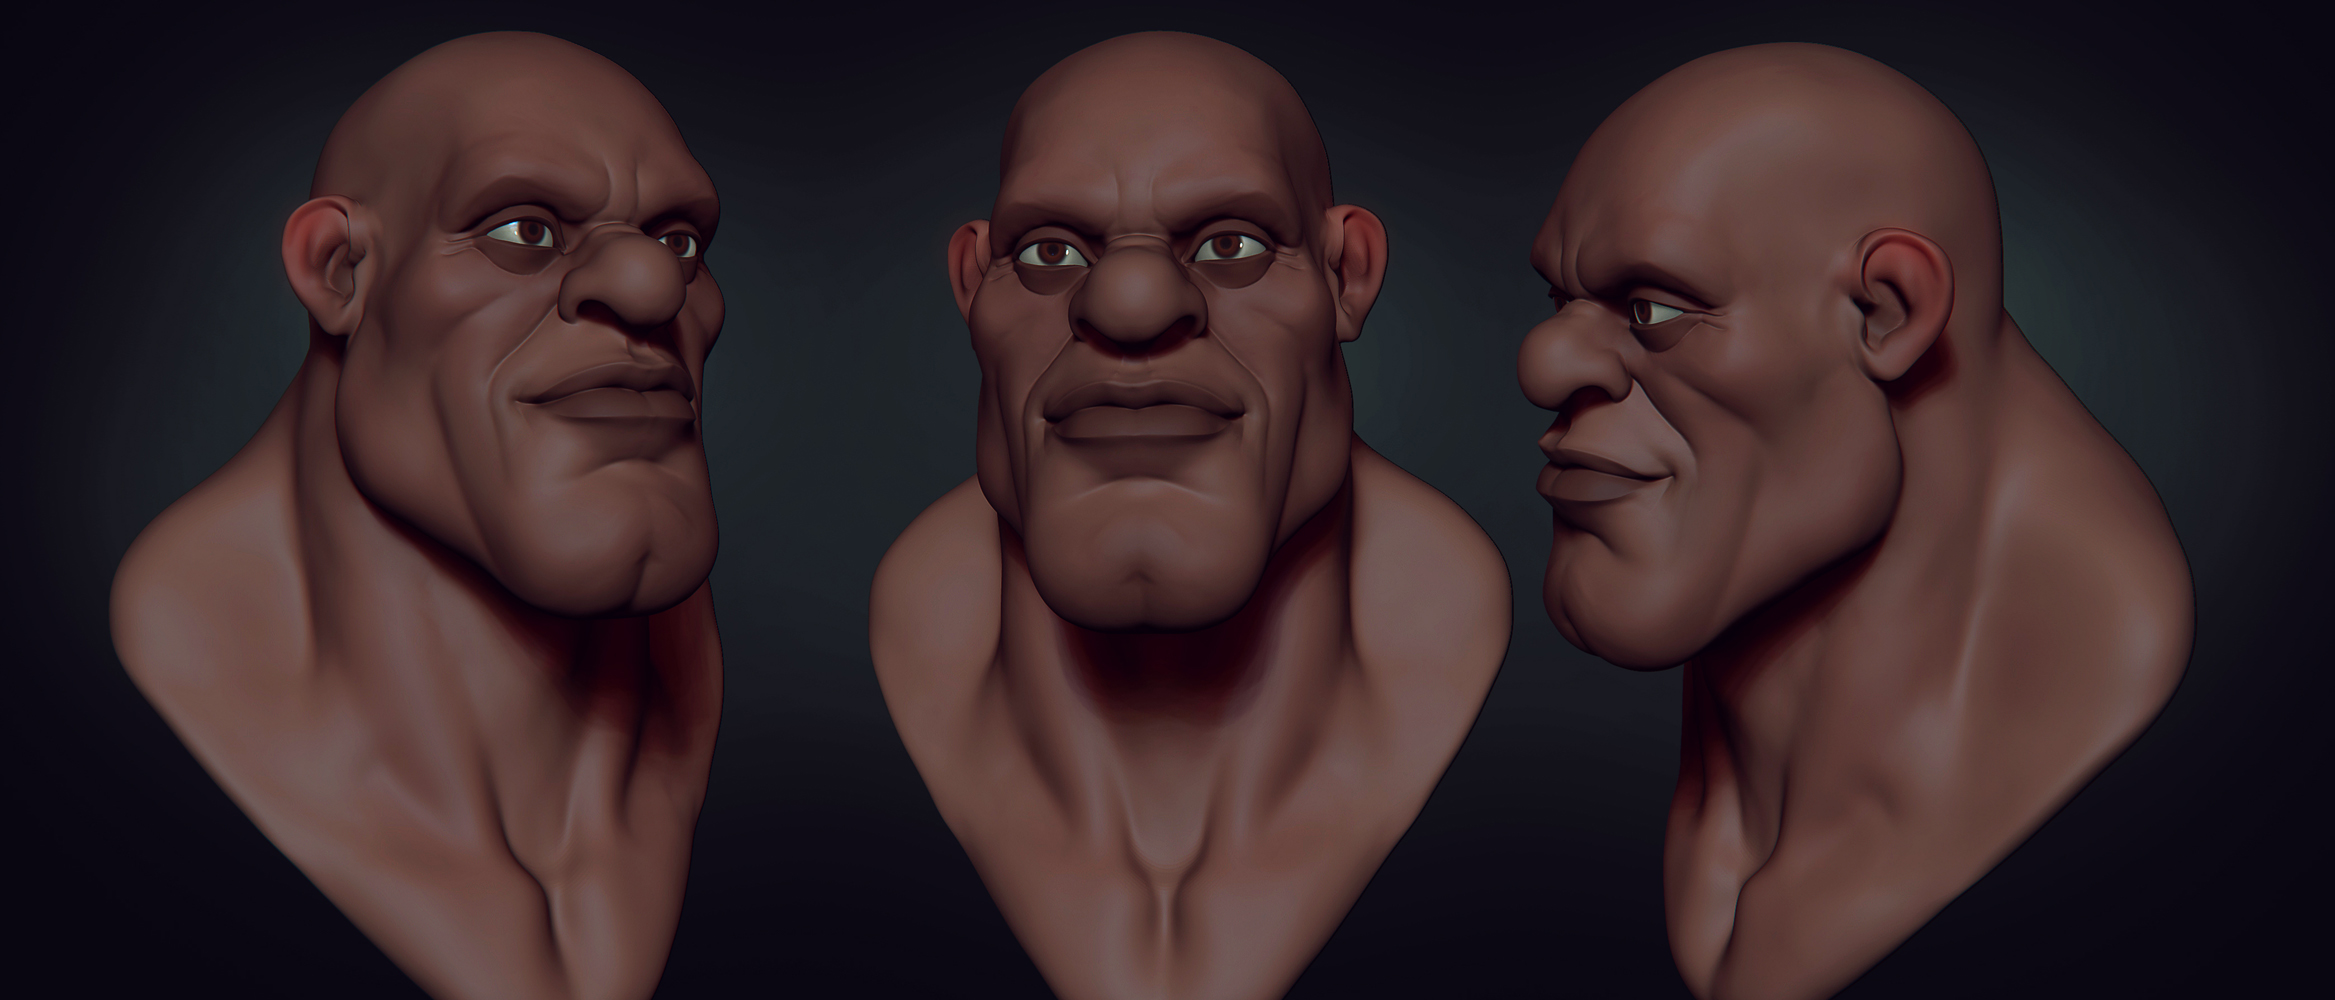 stylized head 1 by CGPTTeam